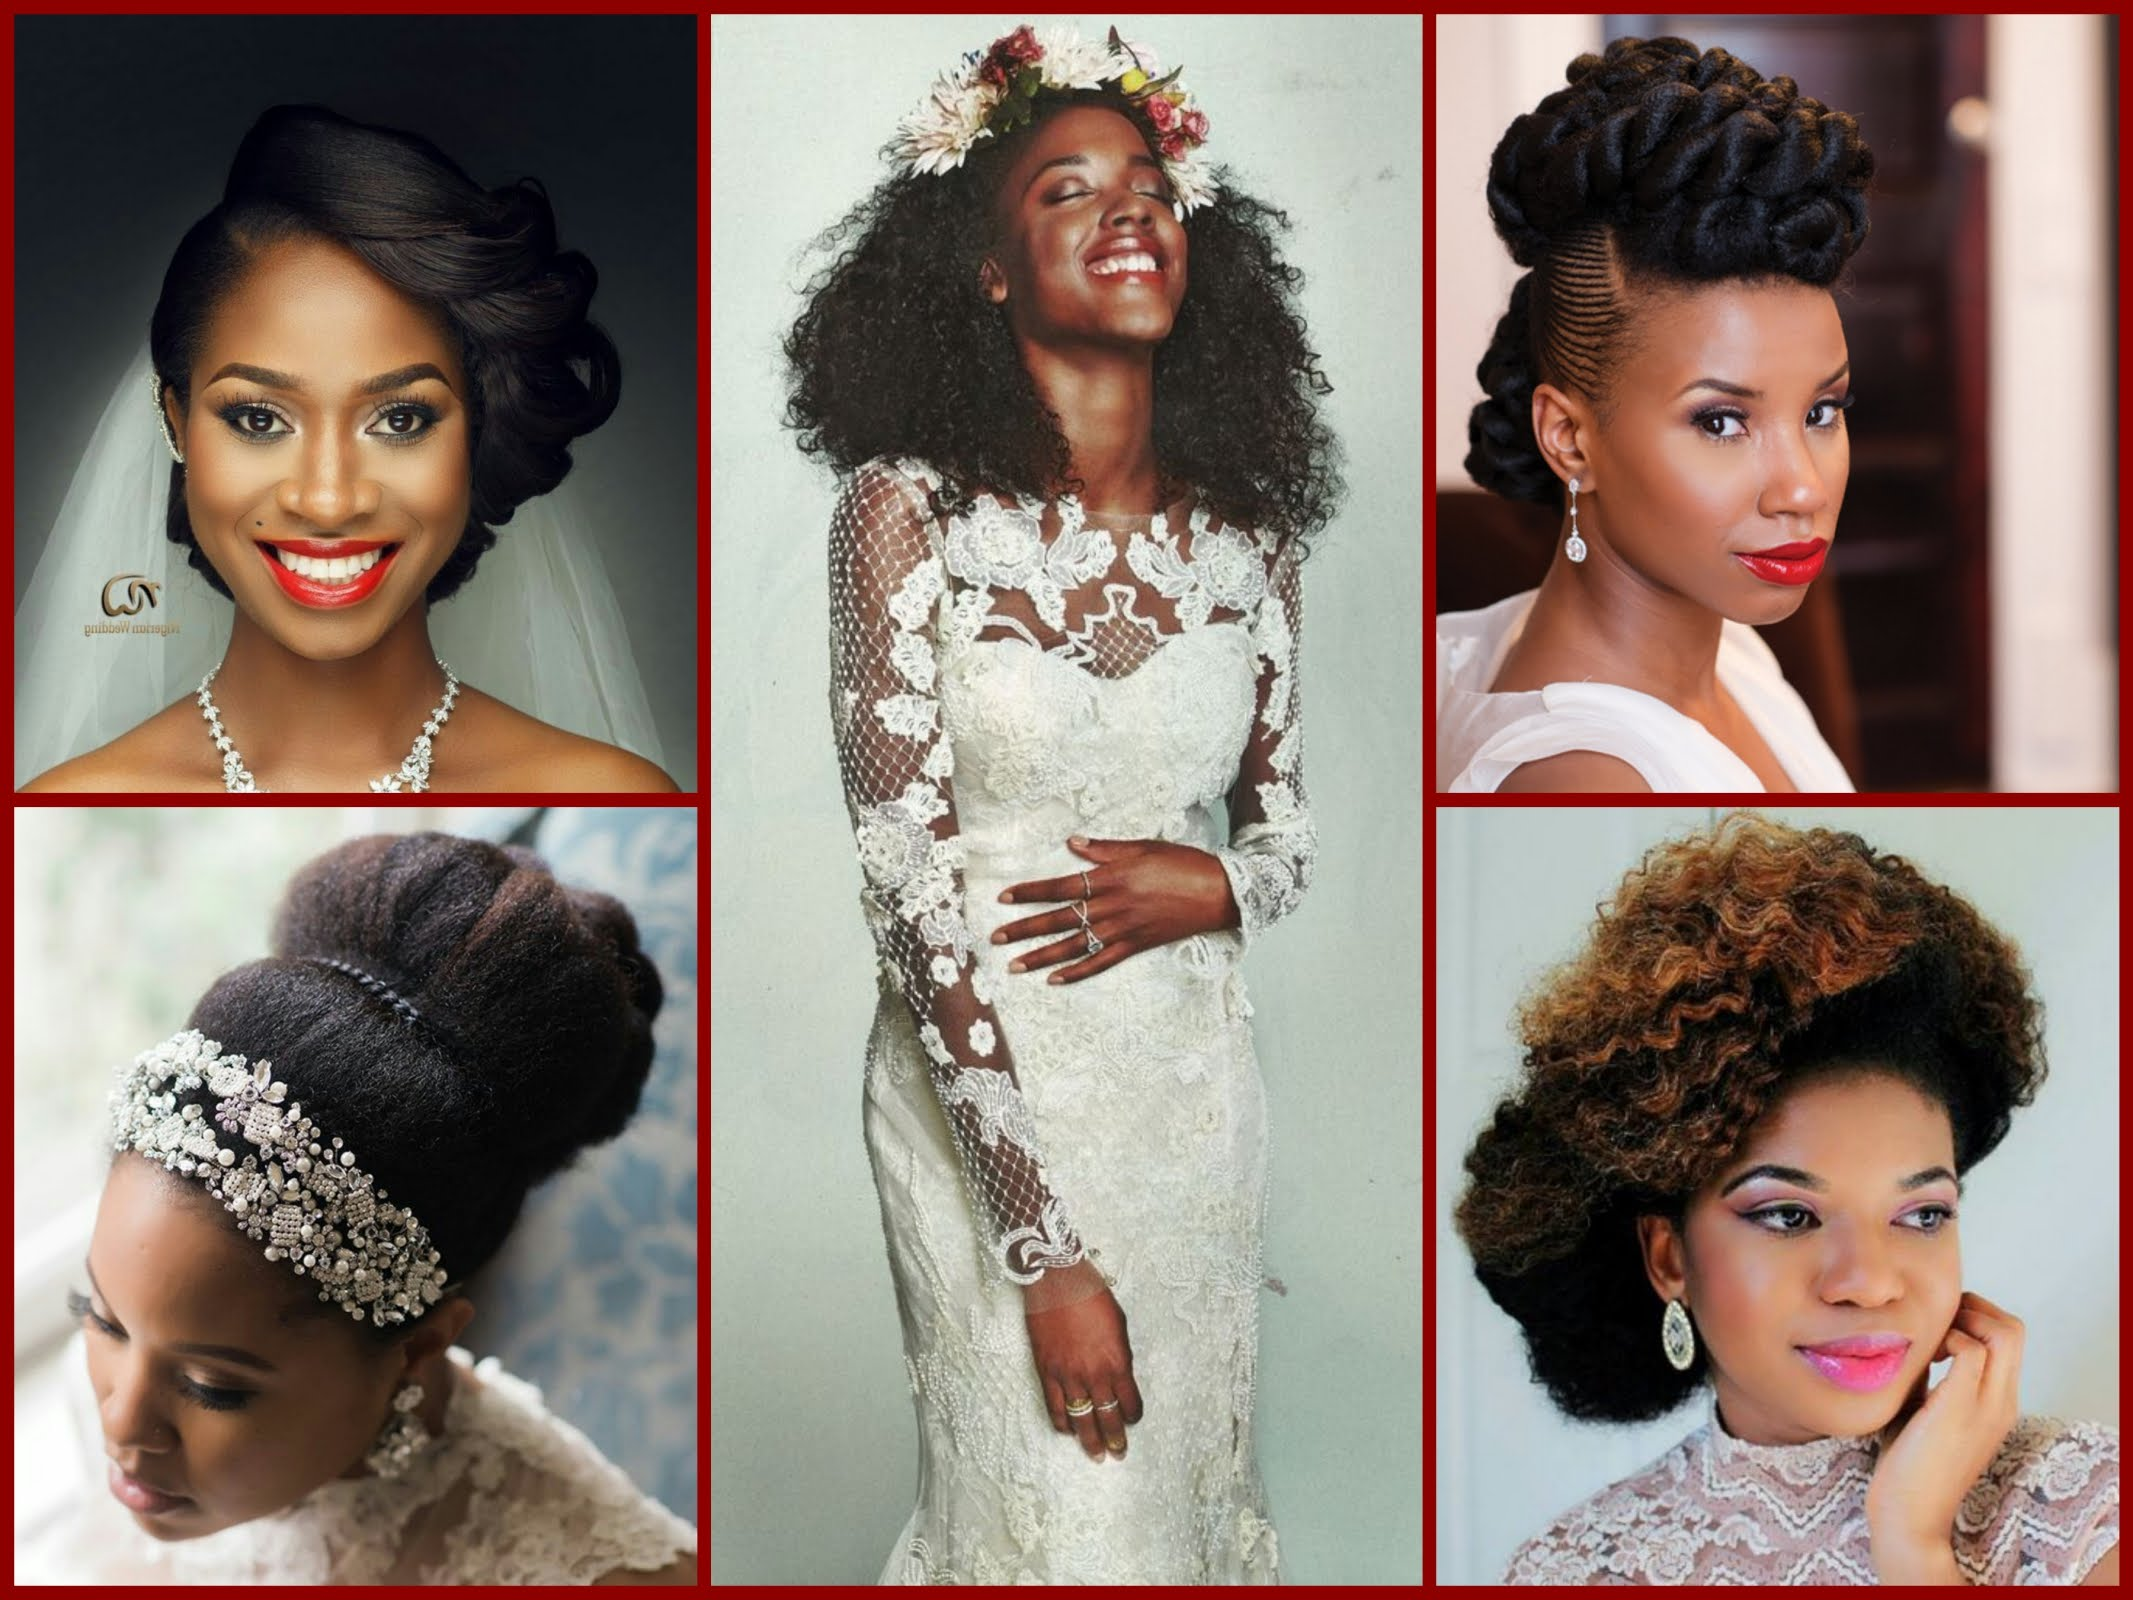 THE PREFECT BRIDAL MAKEUP AND HAIR DESIGNS FOR SOUTH AFRICAN BRIDES 4